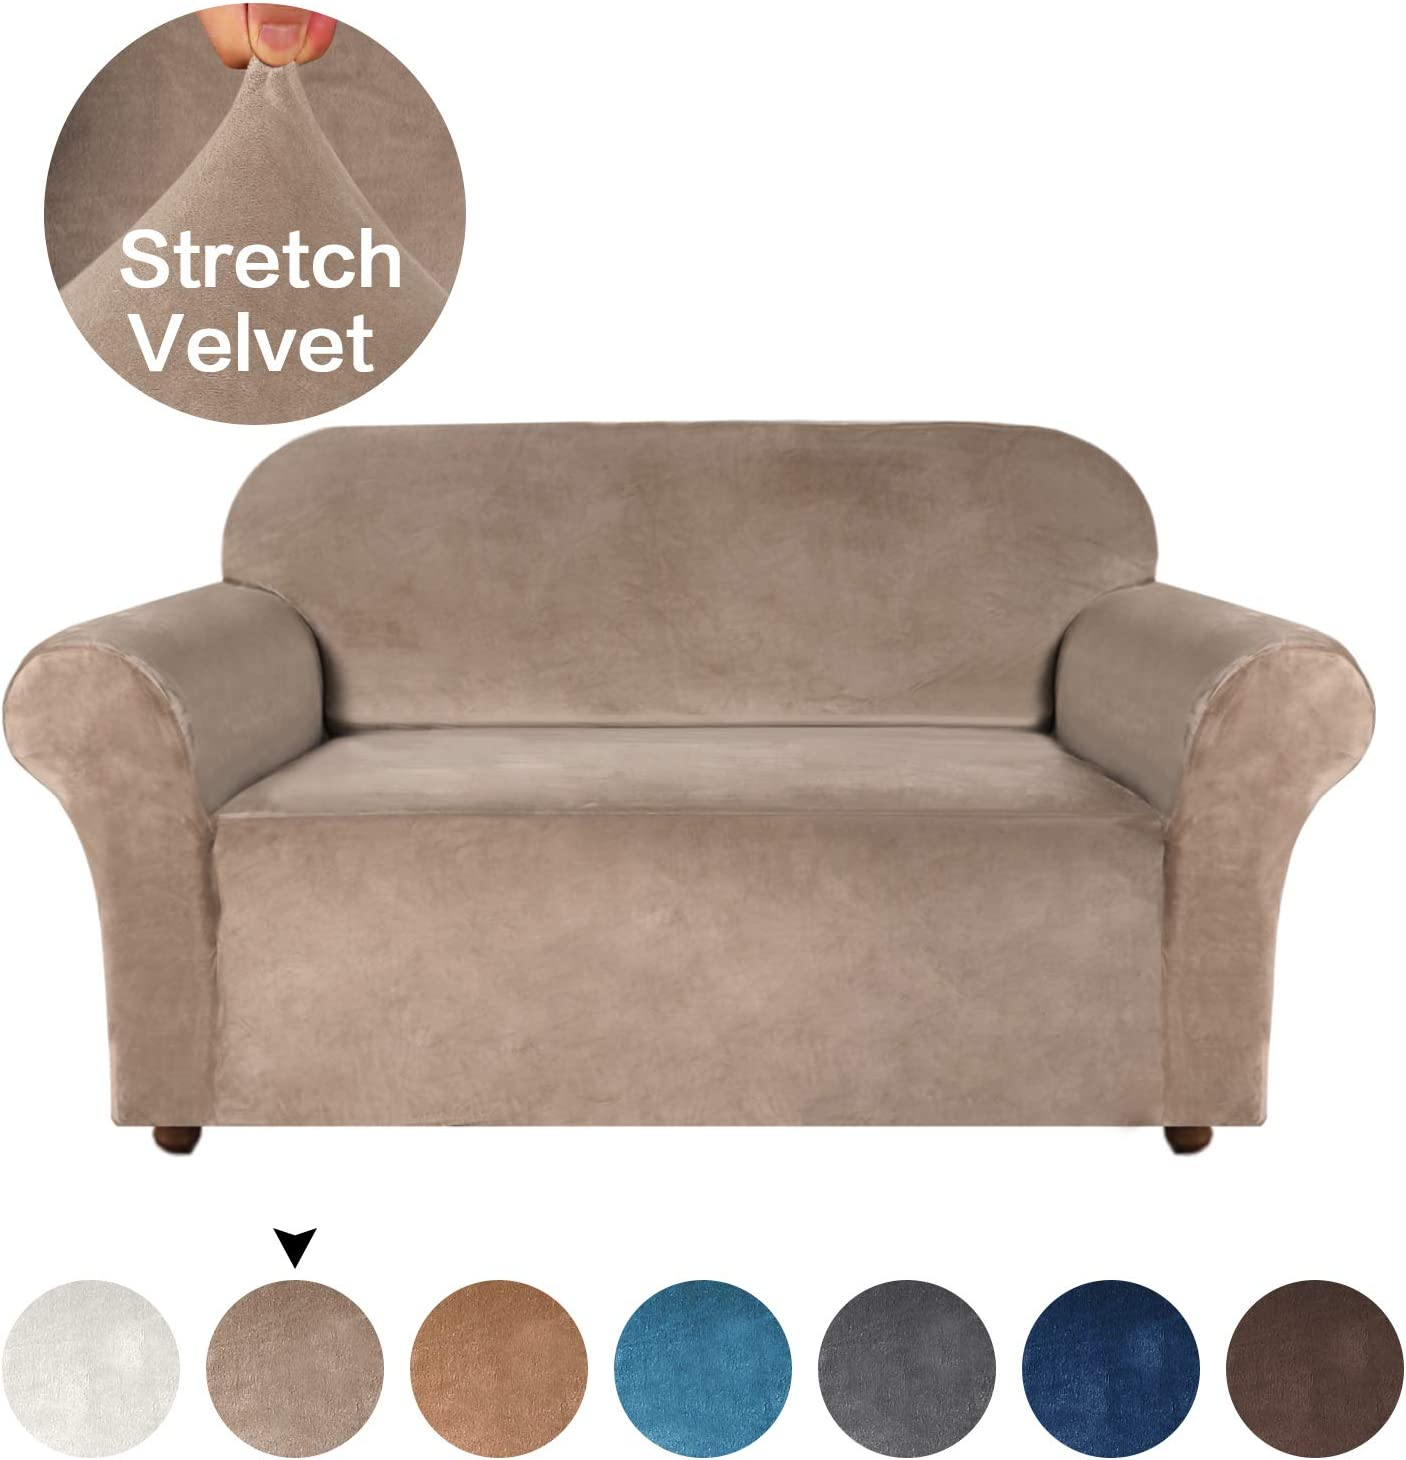 Turquoize Velvet Sofa Cover Stretch Furniture Cover Featuring Deluxe Plush Fabric Super Soft, Velvet Plush Sofa Protector Machine-Washable for Couch Slipcover Highly Fitness (Loveseat, Taupe)